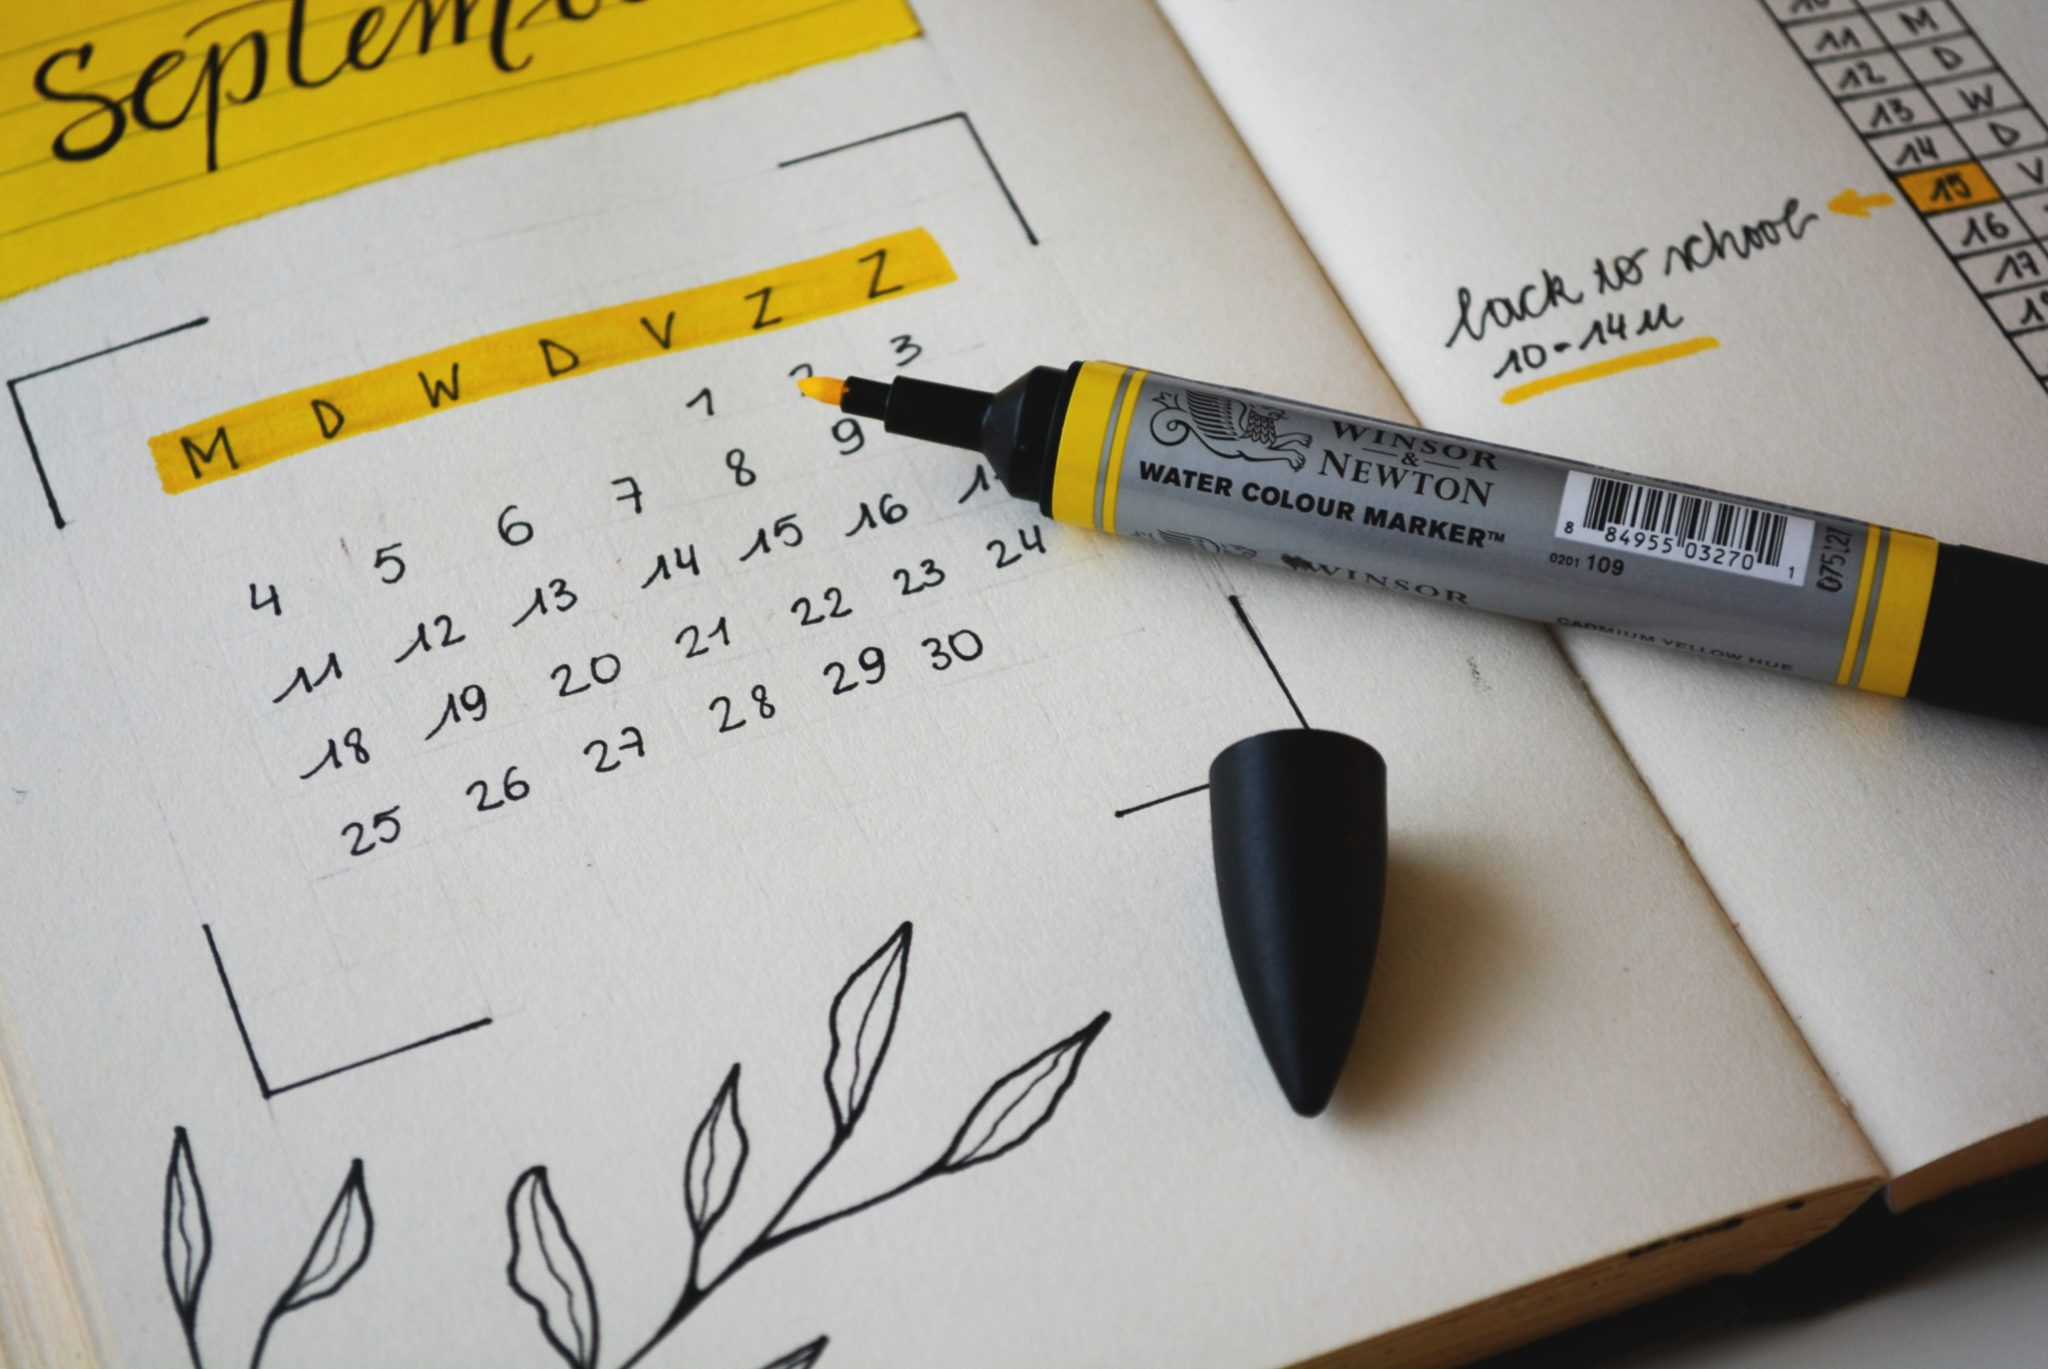 close up image of a calendar with a pen marking the days of a menstrual cycle